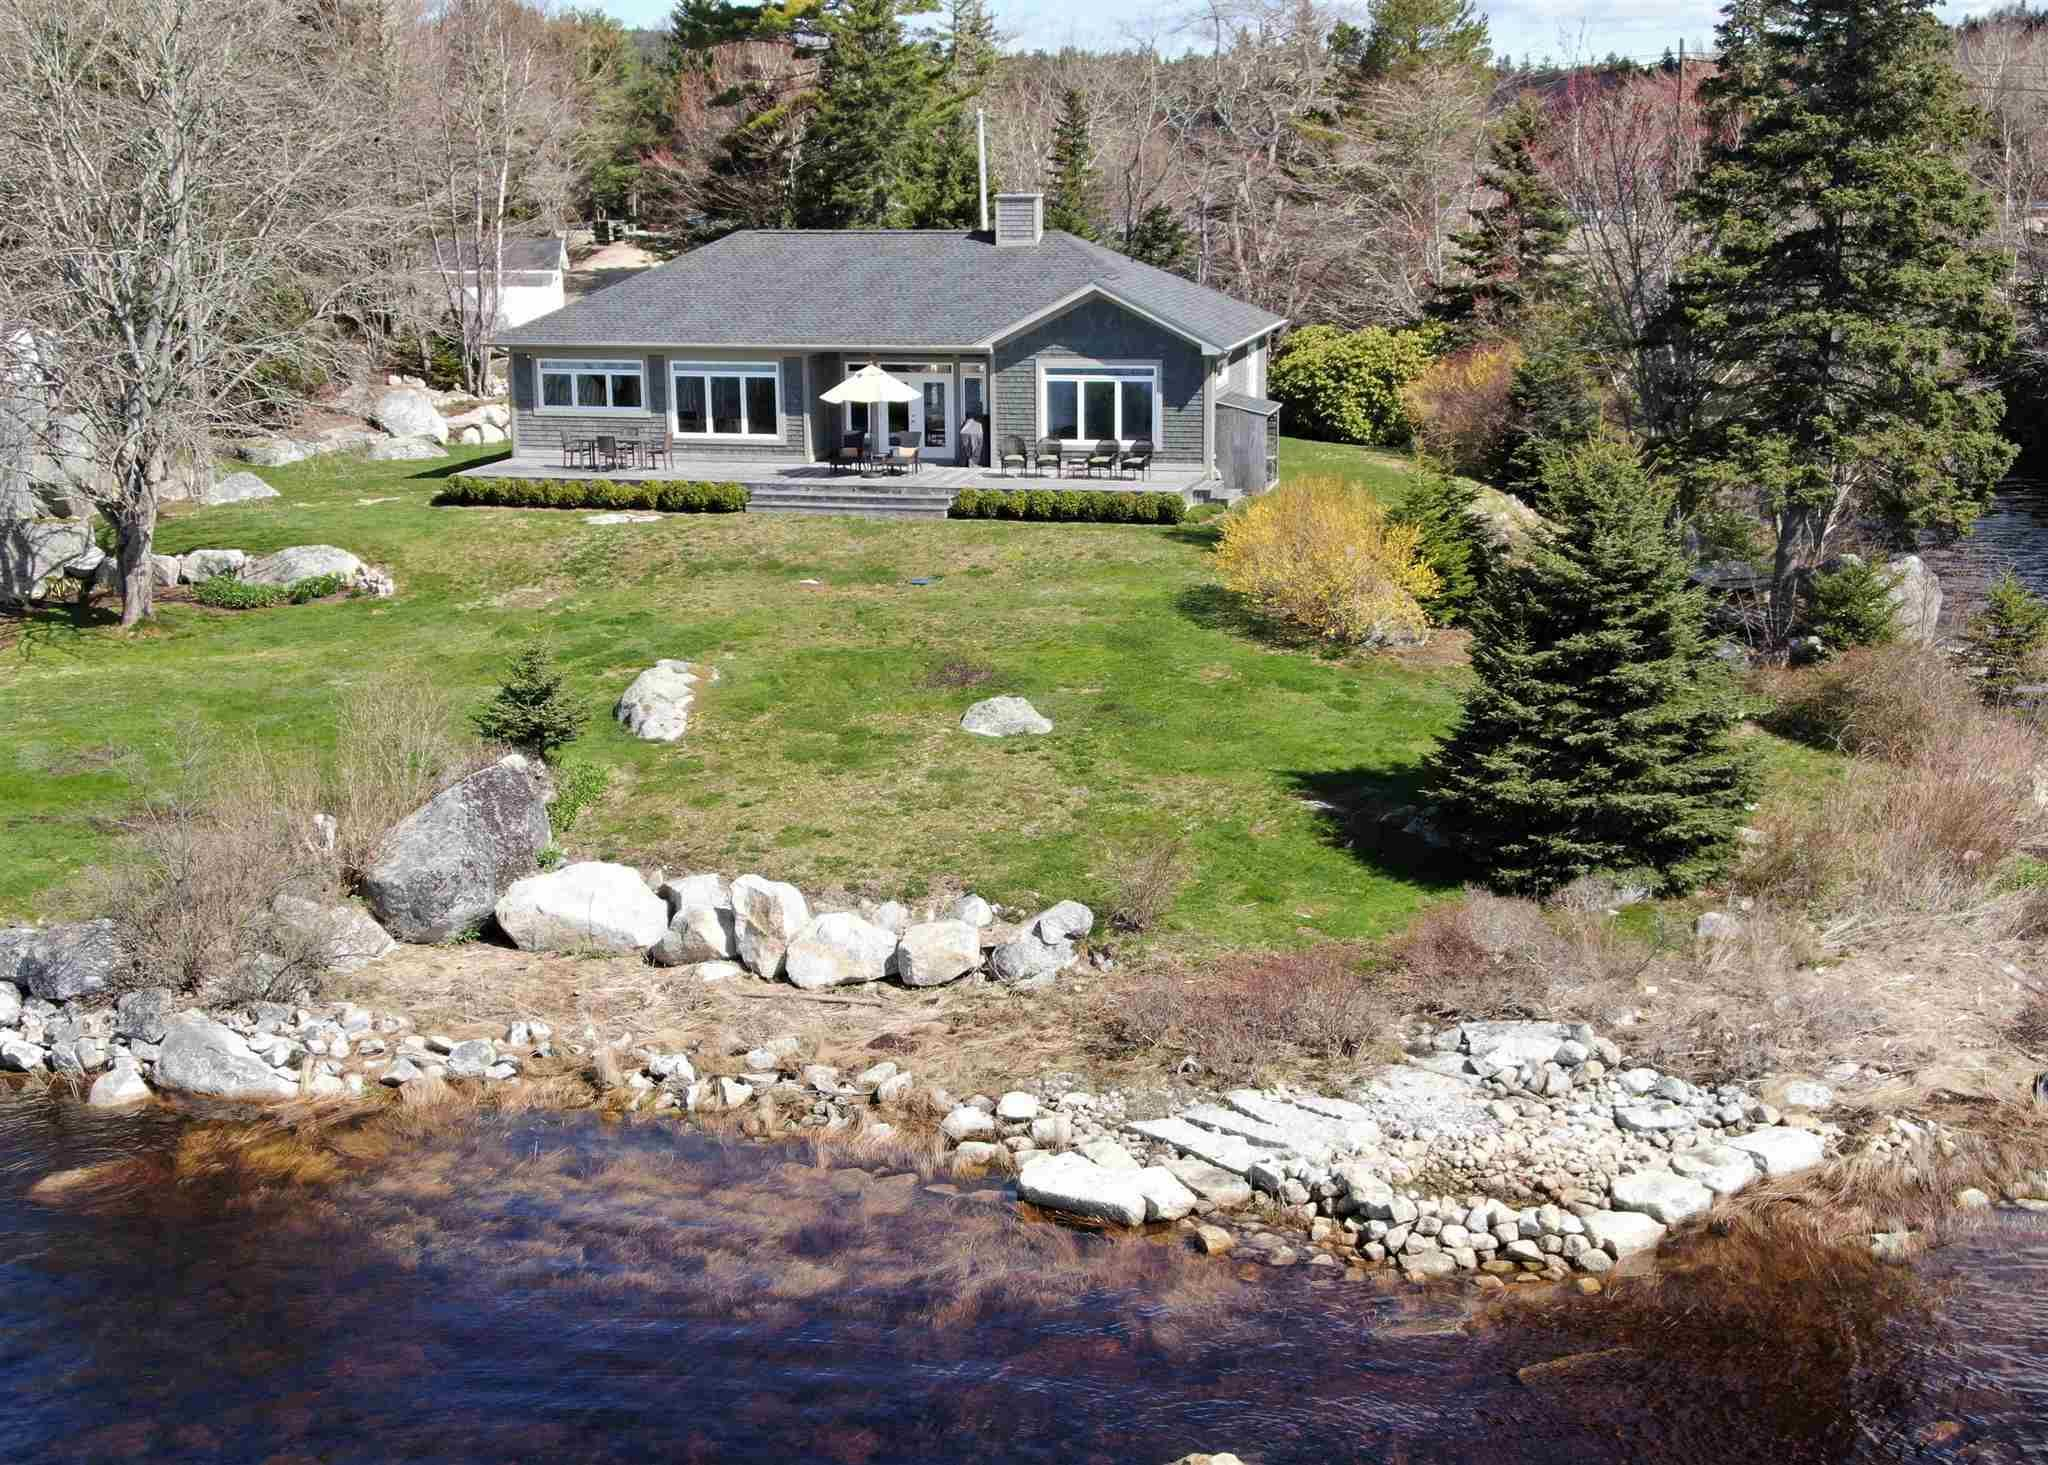 Main Photo: 7 Calm Waters Lane in East River: 405-Lunenburg County Residential for sale (South Shore)  : MLS®# 202110586